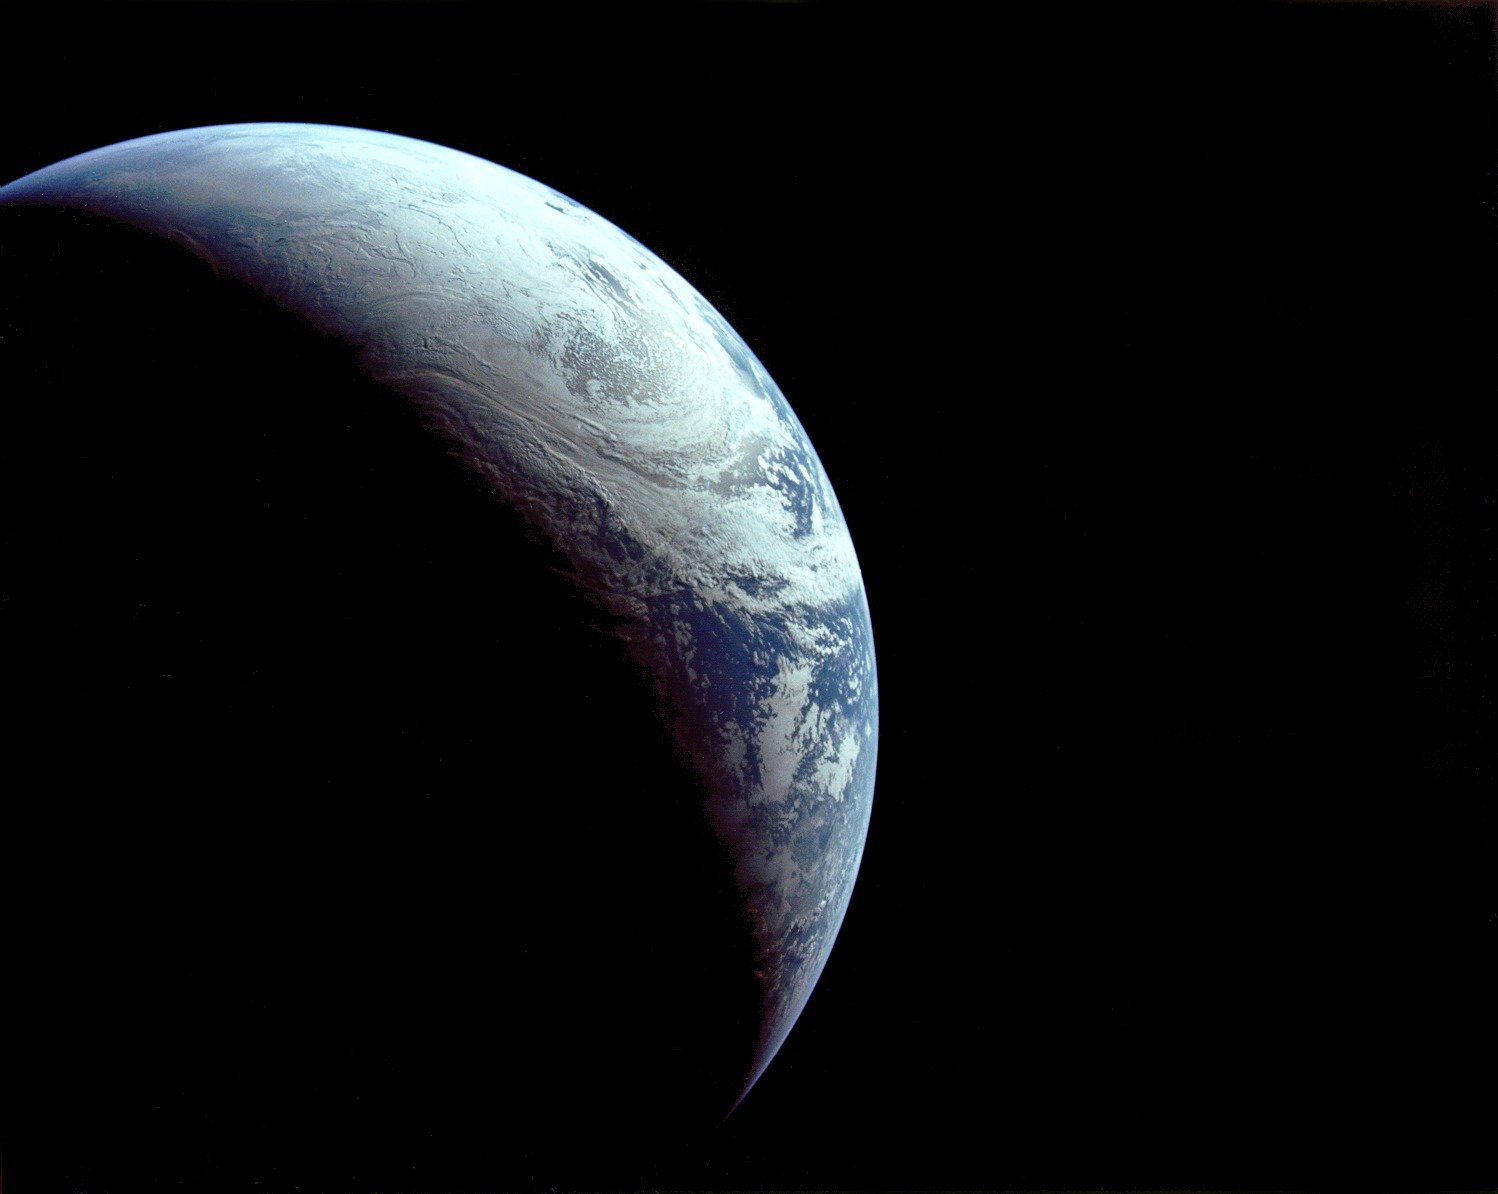 The Earth as seen by the crew of Apollo 4 from about 10 miles up. University of Washington astronomer Woody Sullivan and co-author ask, have there been other species with energy-intensive technology? And if so, how long did they last?